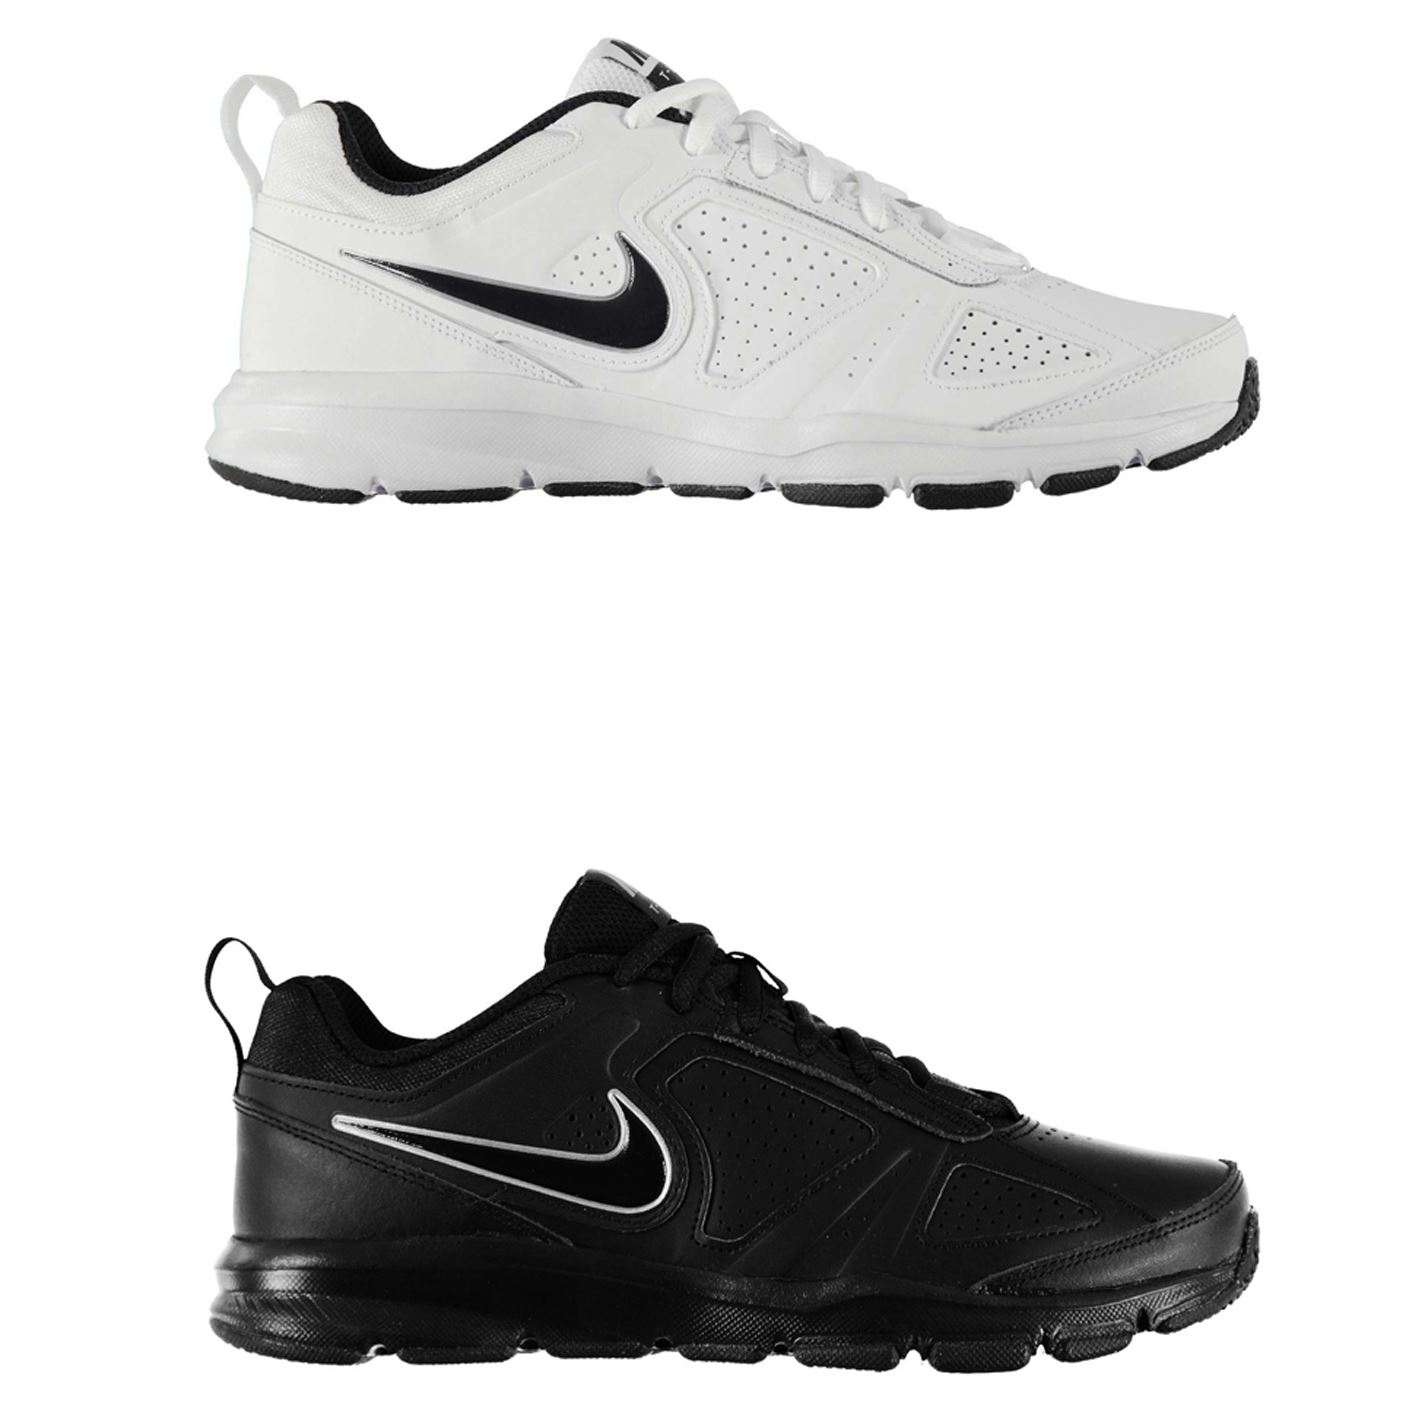 online store 129b2 e8d97 ... Nike T Lite XI Training Shoes Mens Gym Fitness Workout Trainers  Sneakers ...